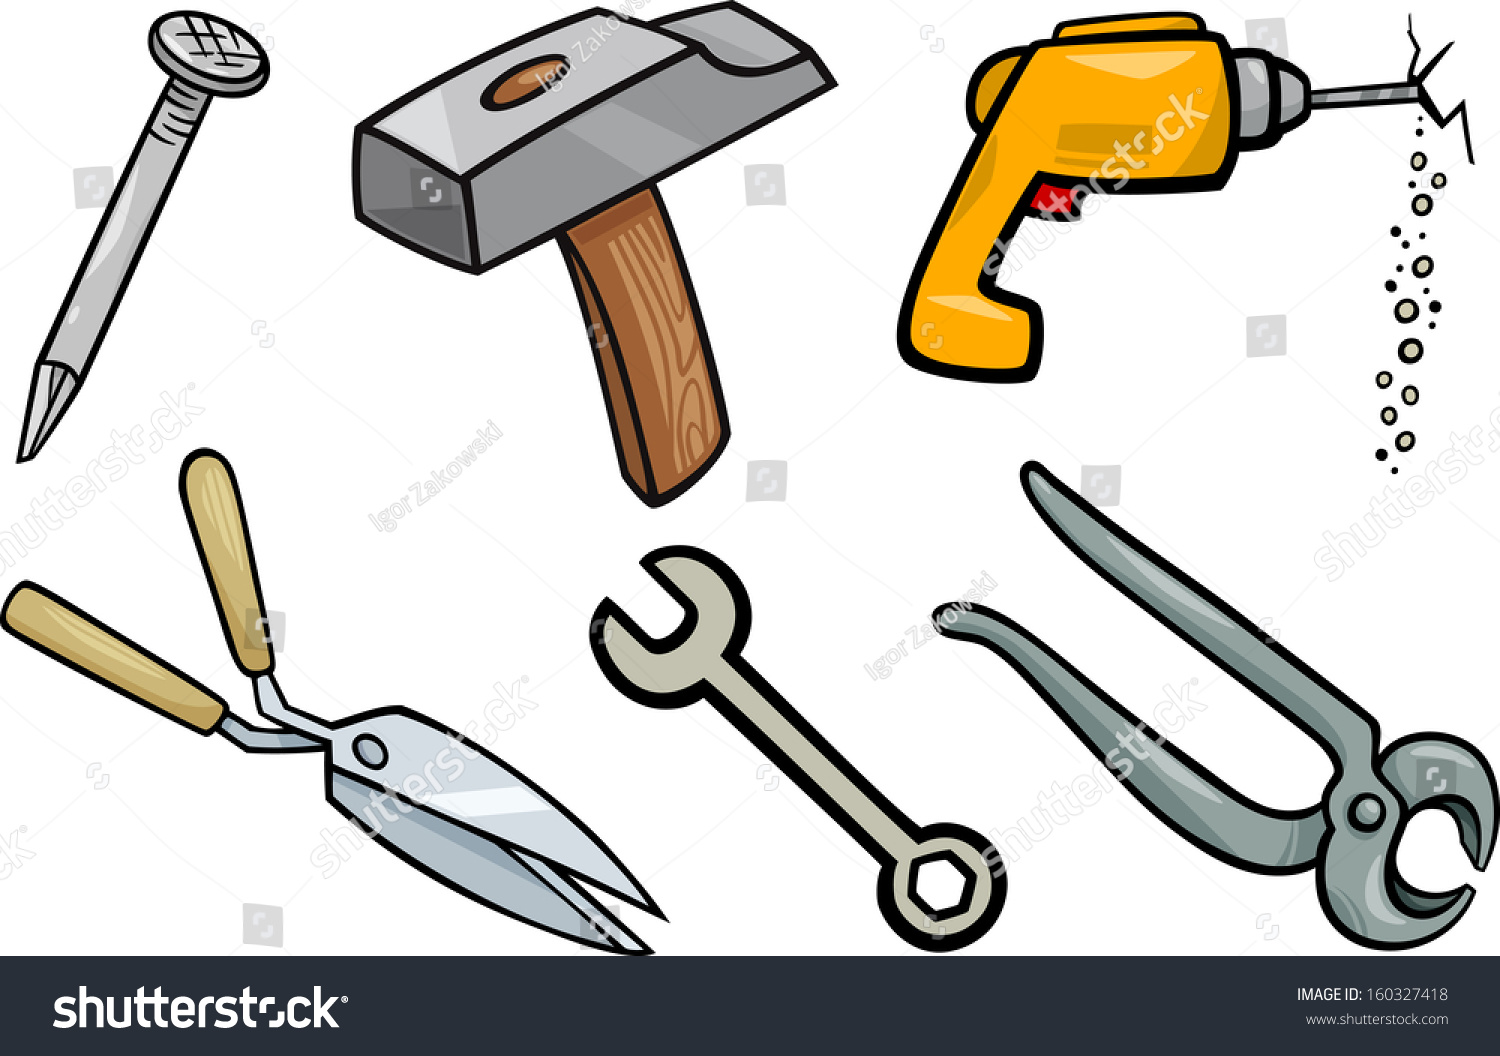 Cartoon Vector Illustration Of Tools Objects Clip Art Set ...